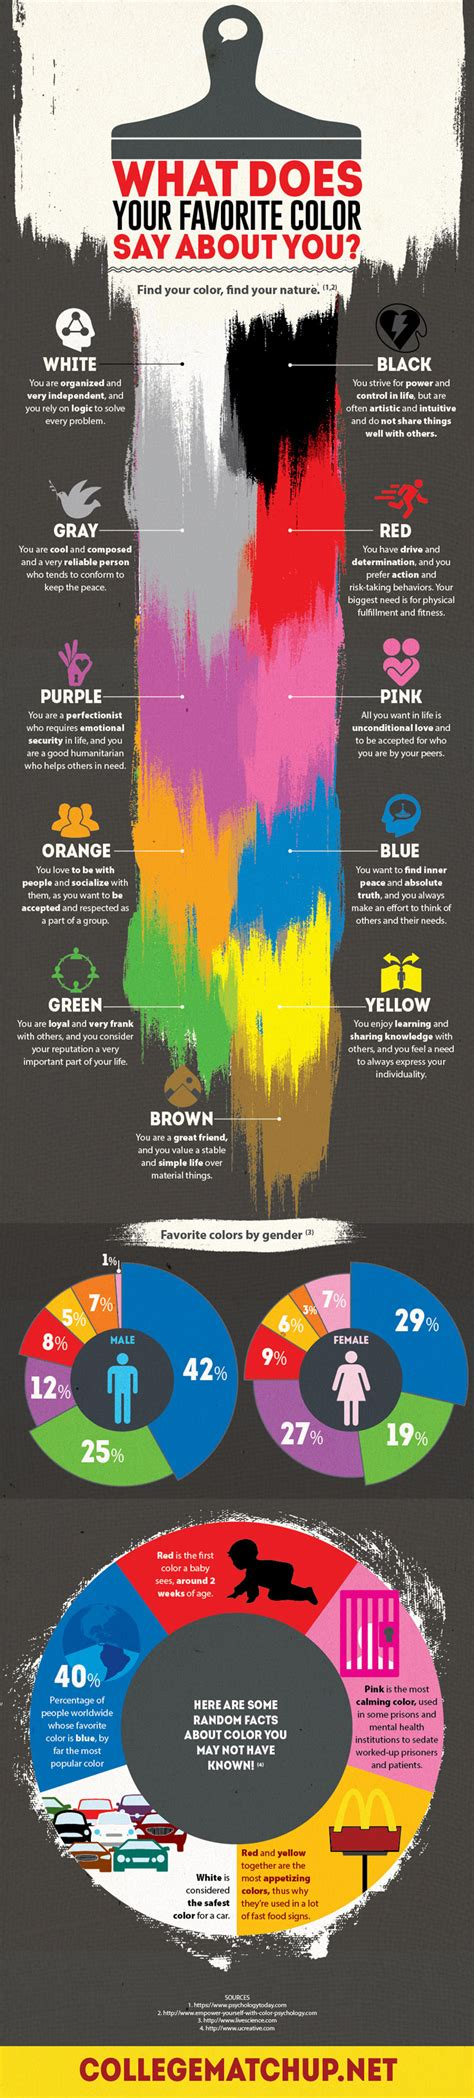 What Does Your Favorite Color Say About You | what does your favorite color say about you infographic